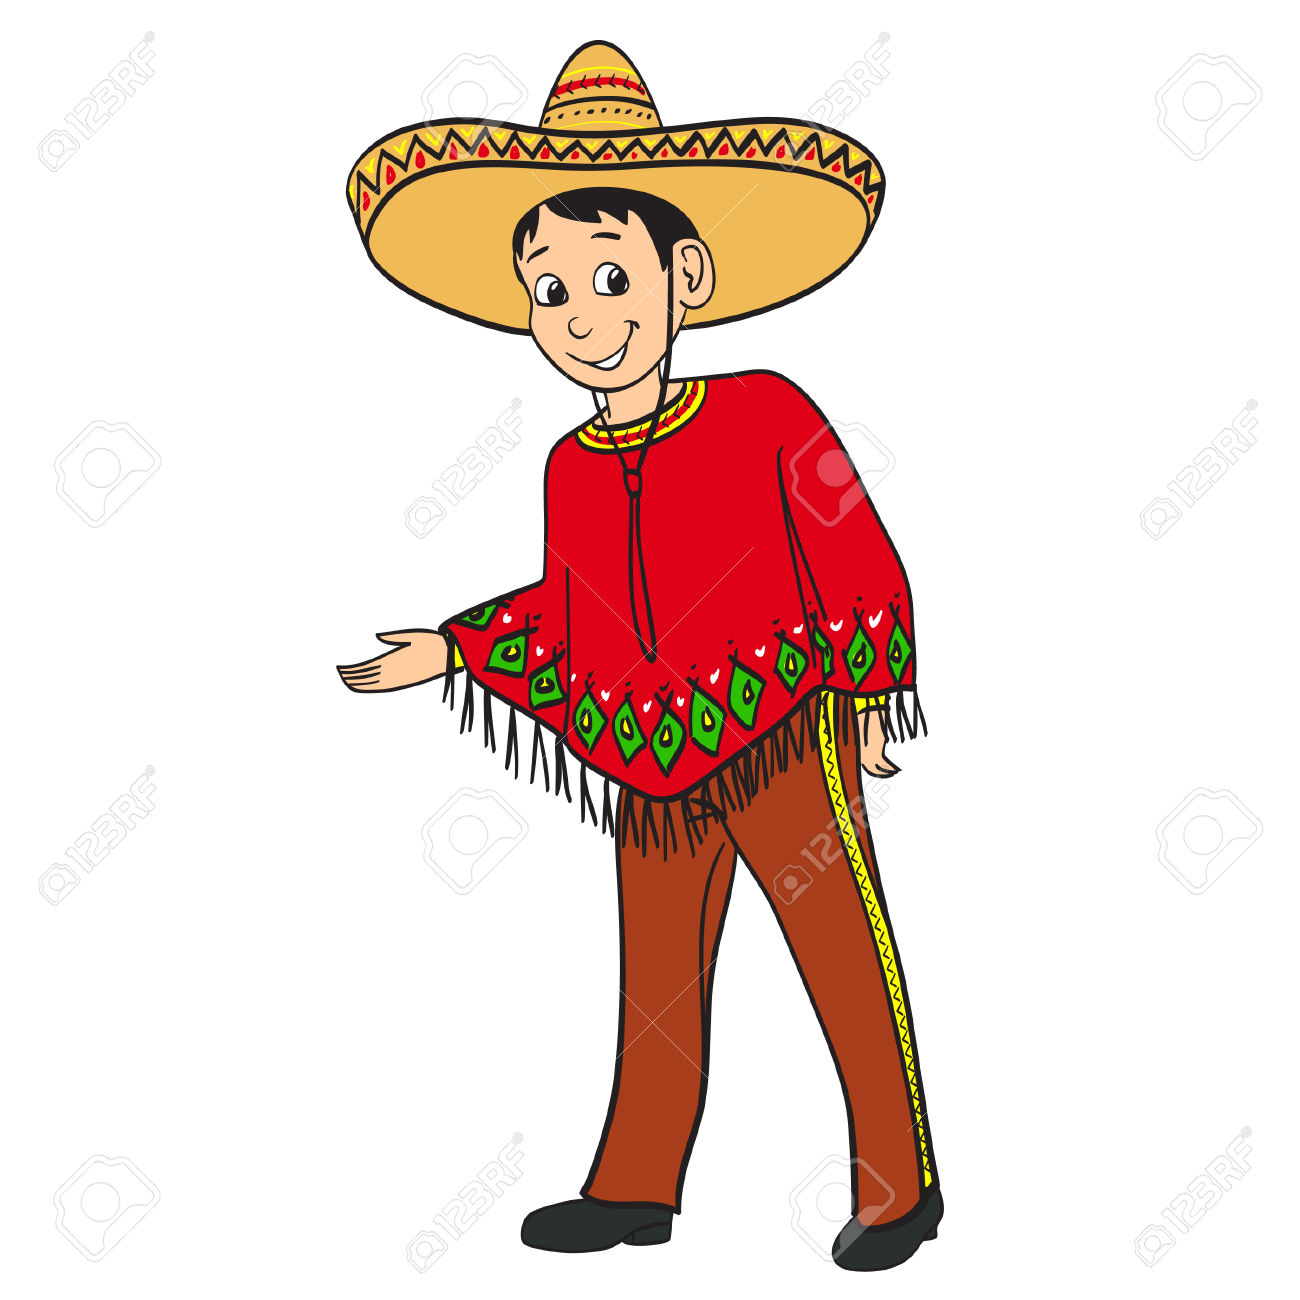 Red Dress clipart mexican dress Mexican In clipart Dressed Traditional